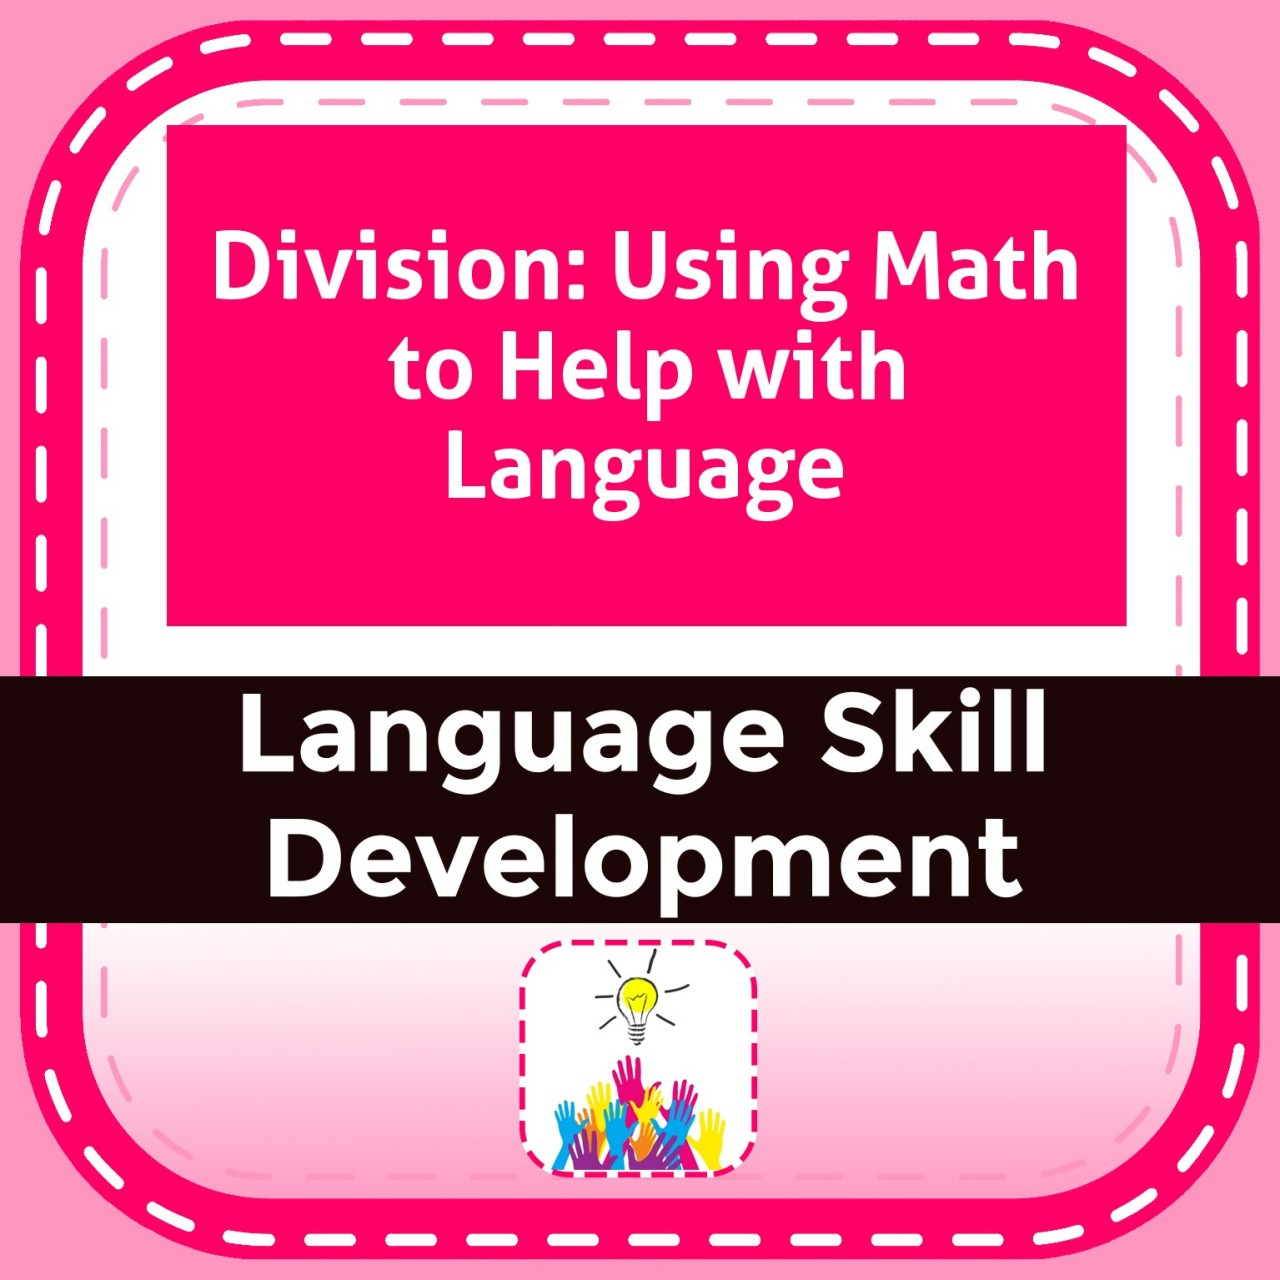 Division: Using Math to Help with Language